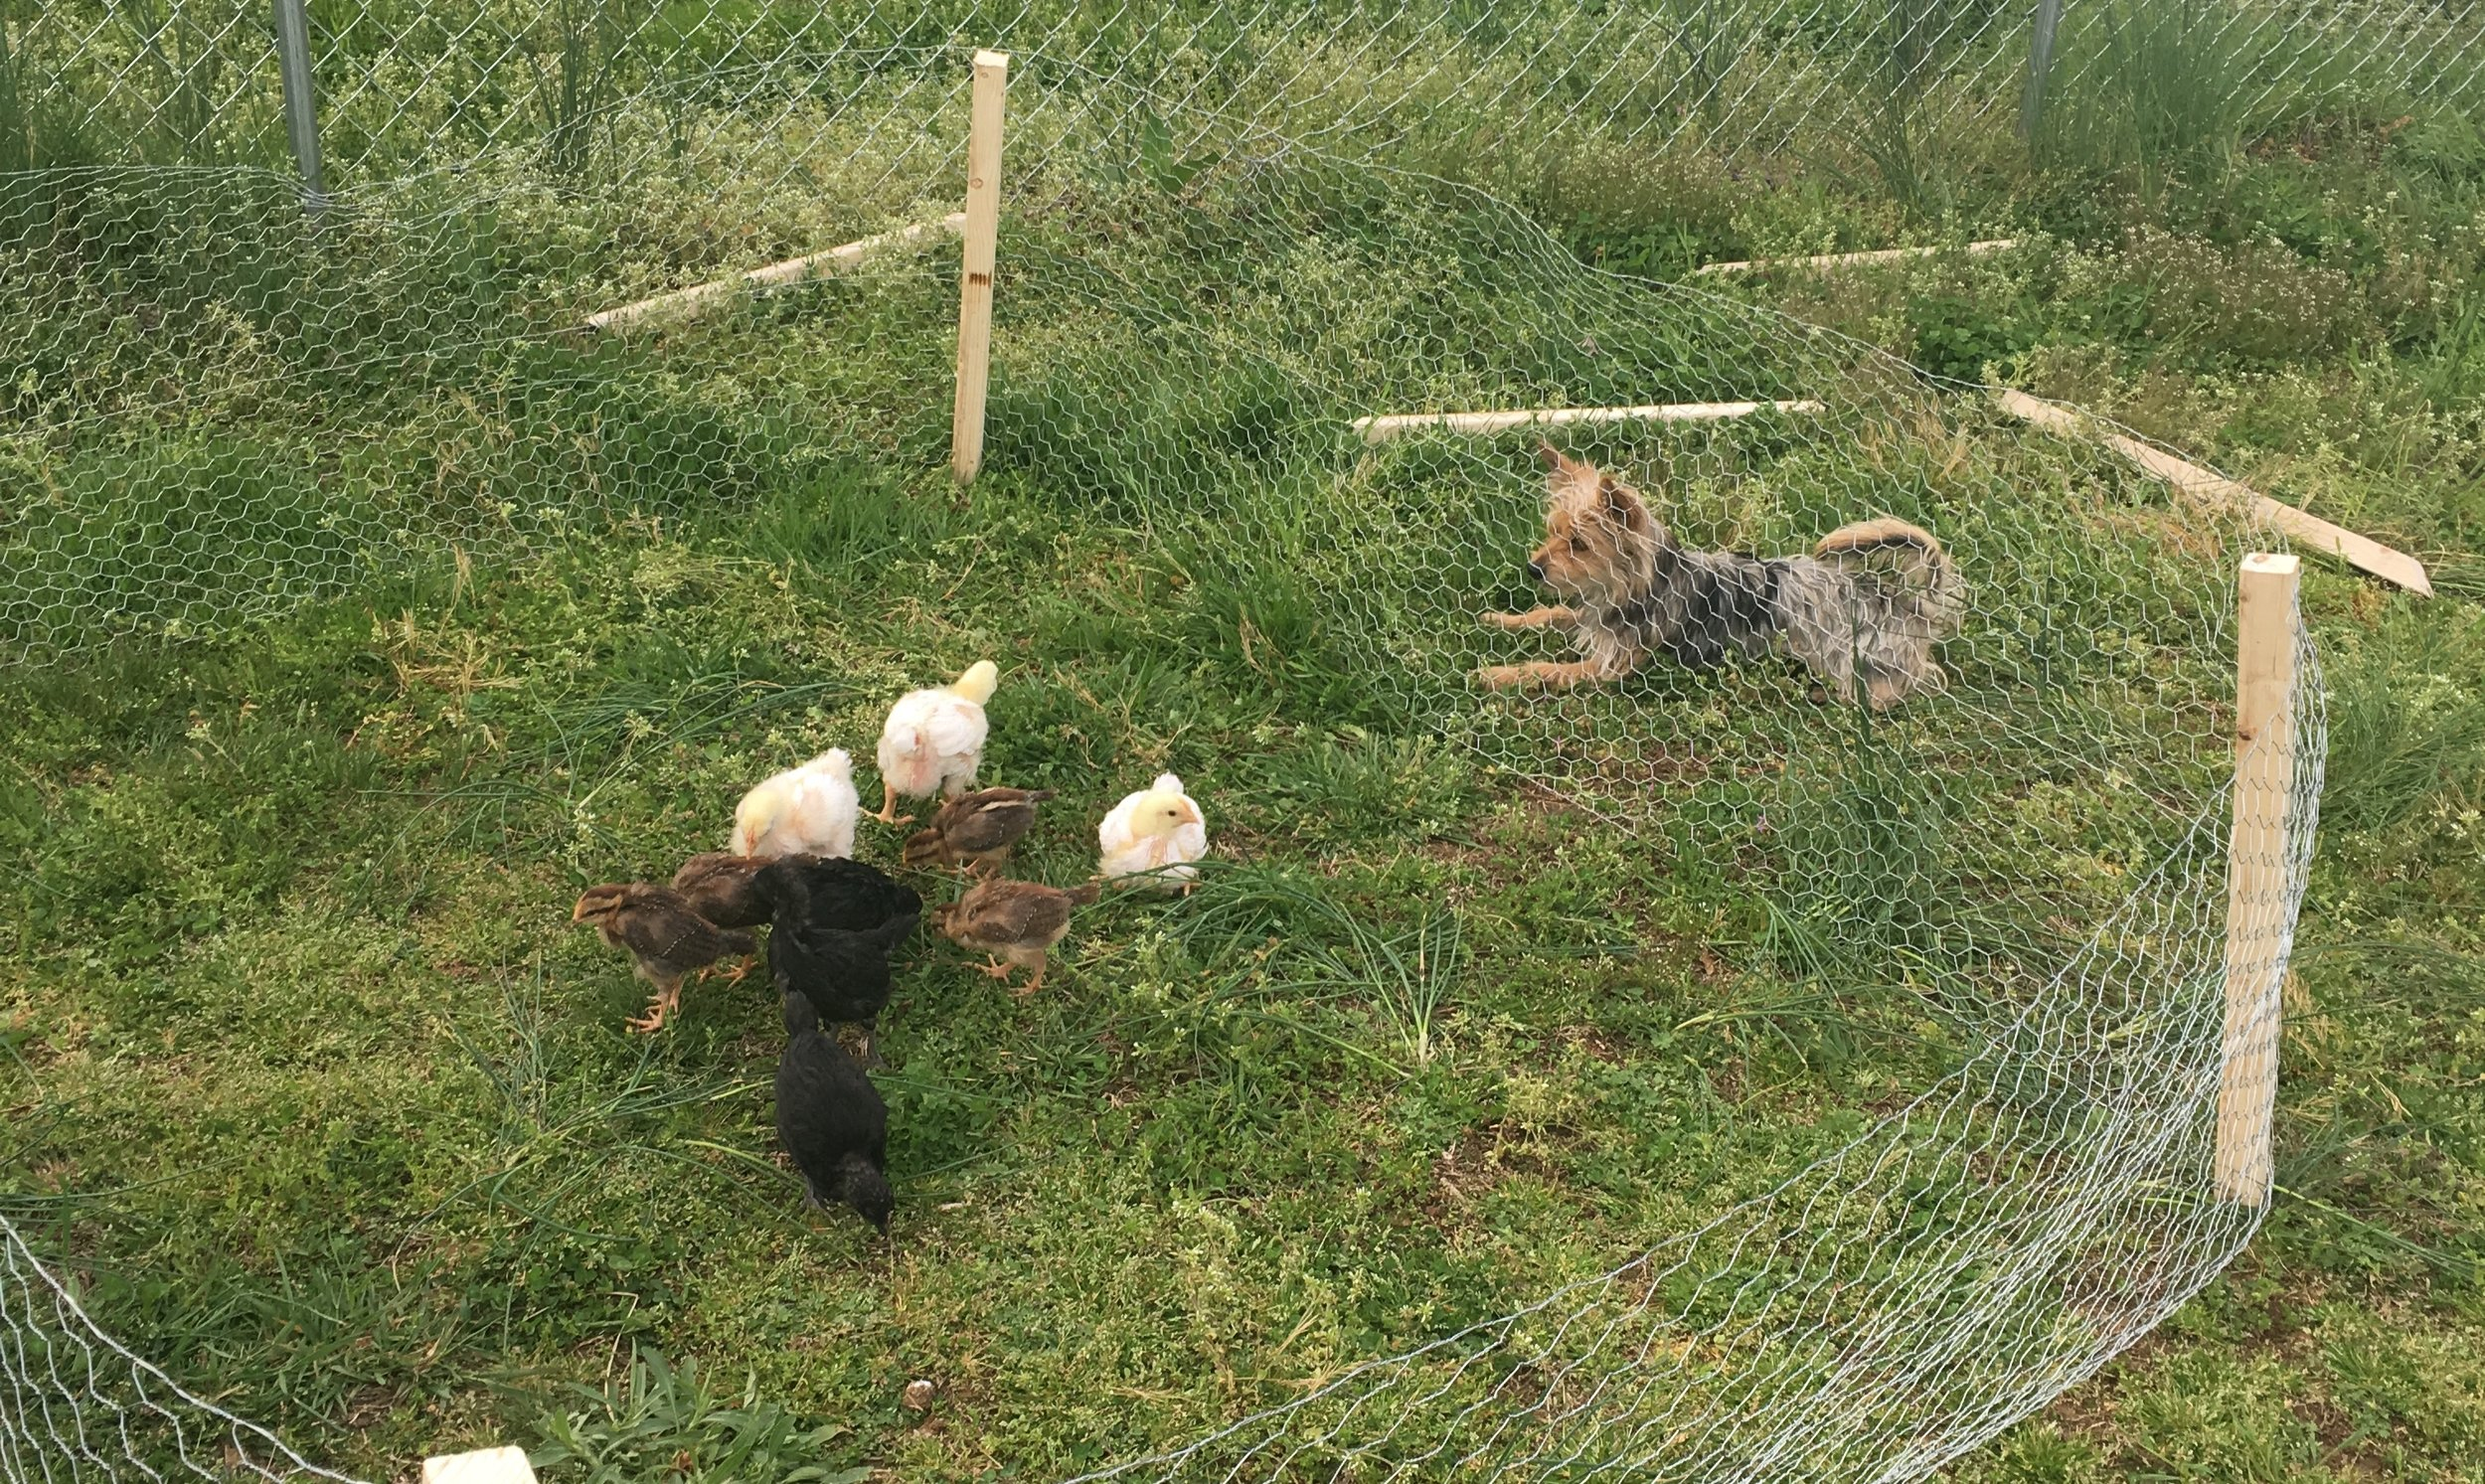 Baby chickens and a yorkie